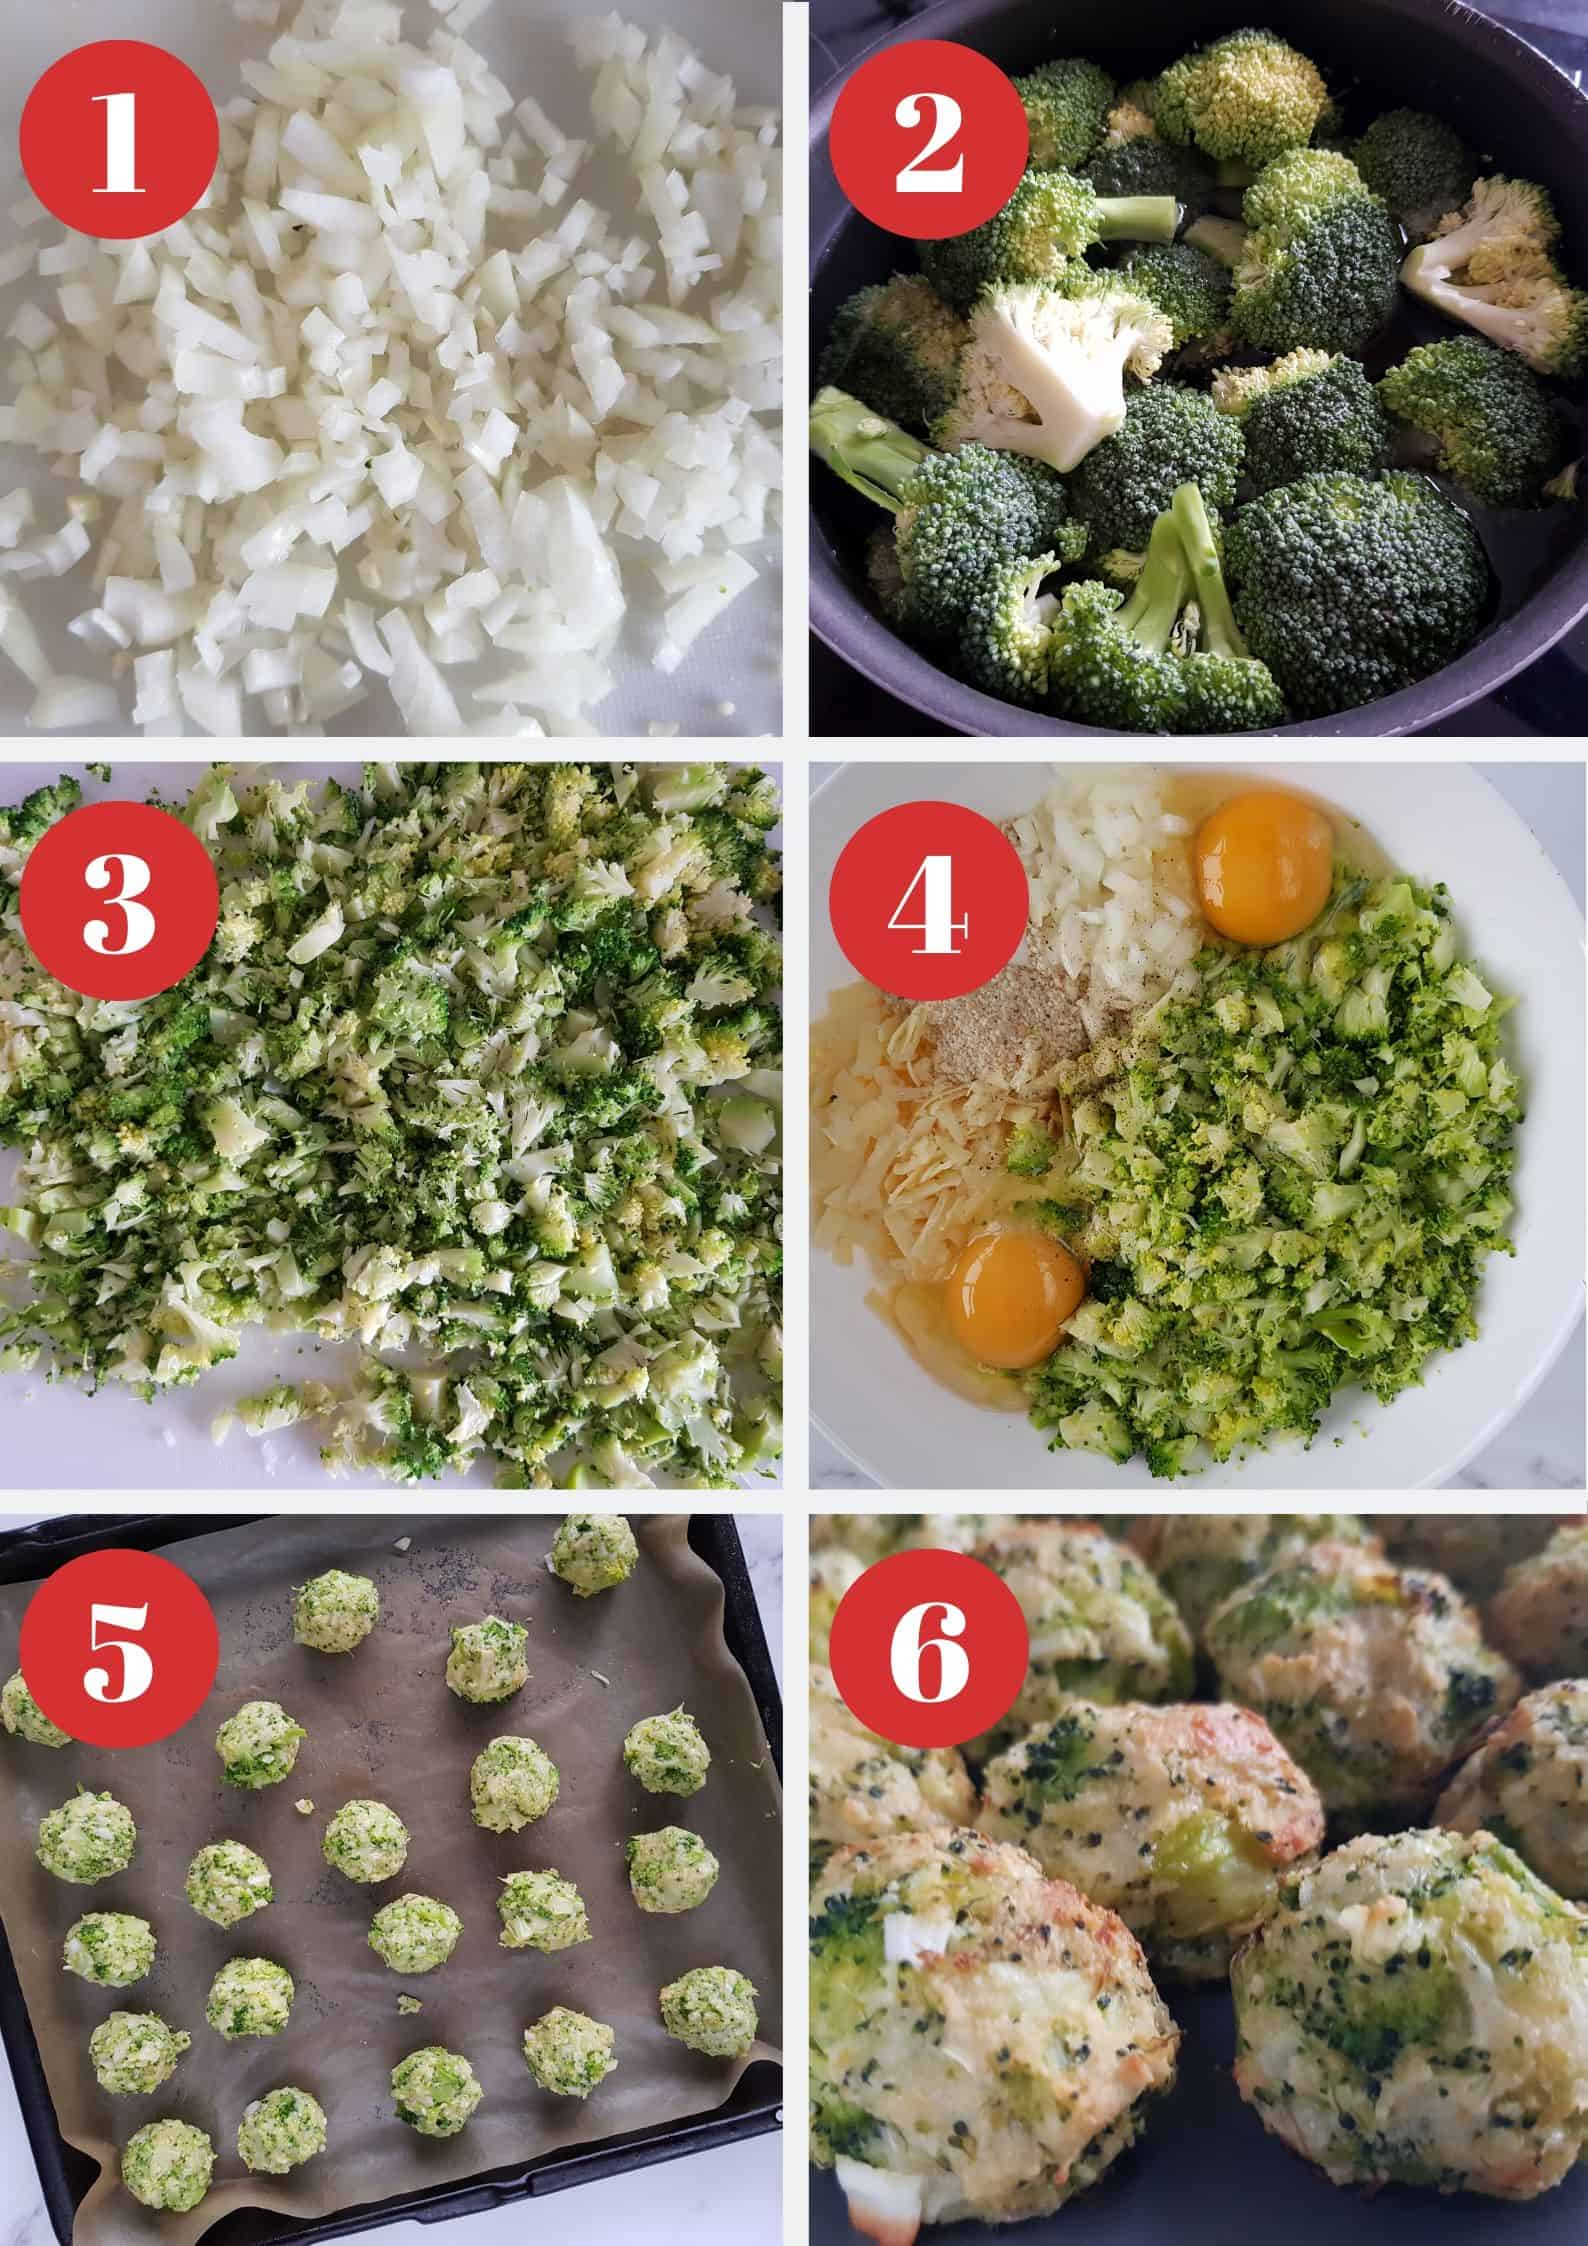 Infographic showing step by step how to make broccoli and cheese balls.